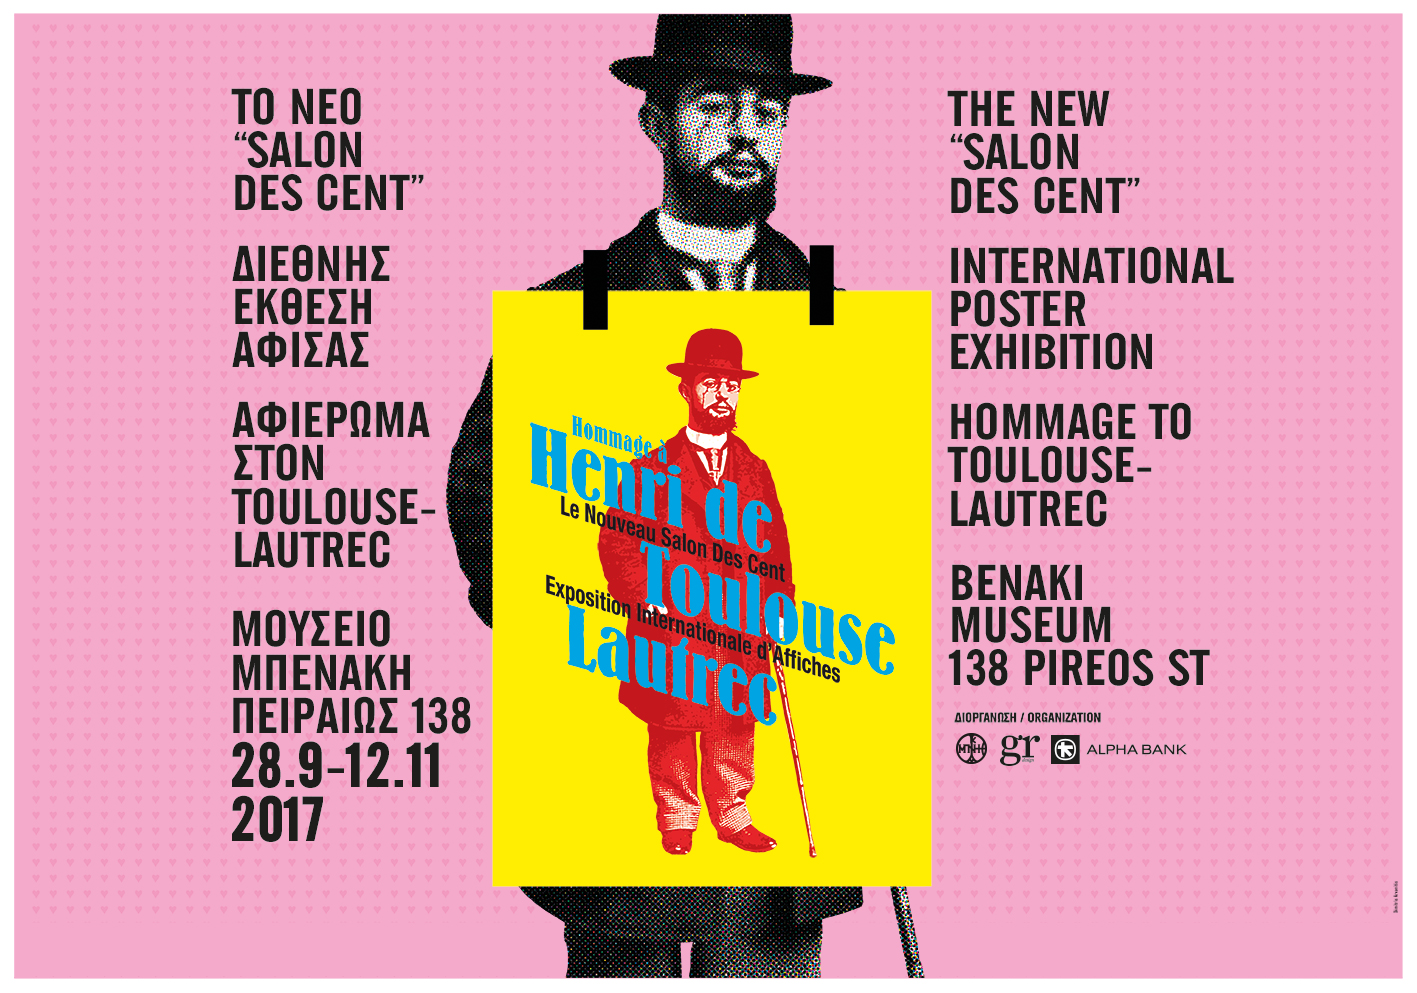 International poster exhibition, hommage to Toulouse-Lautrec